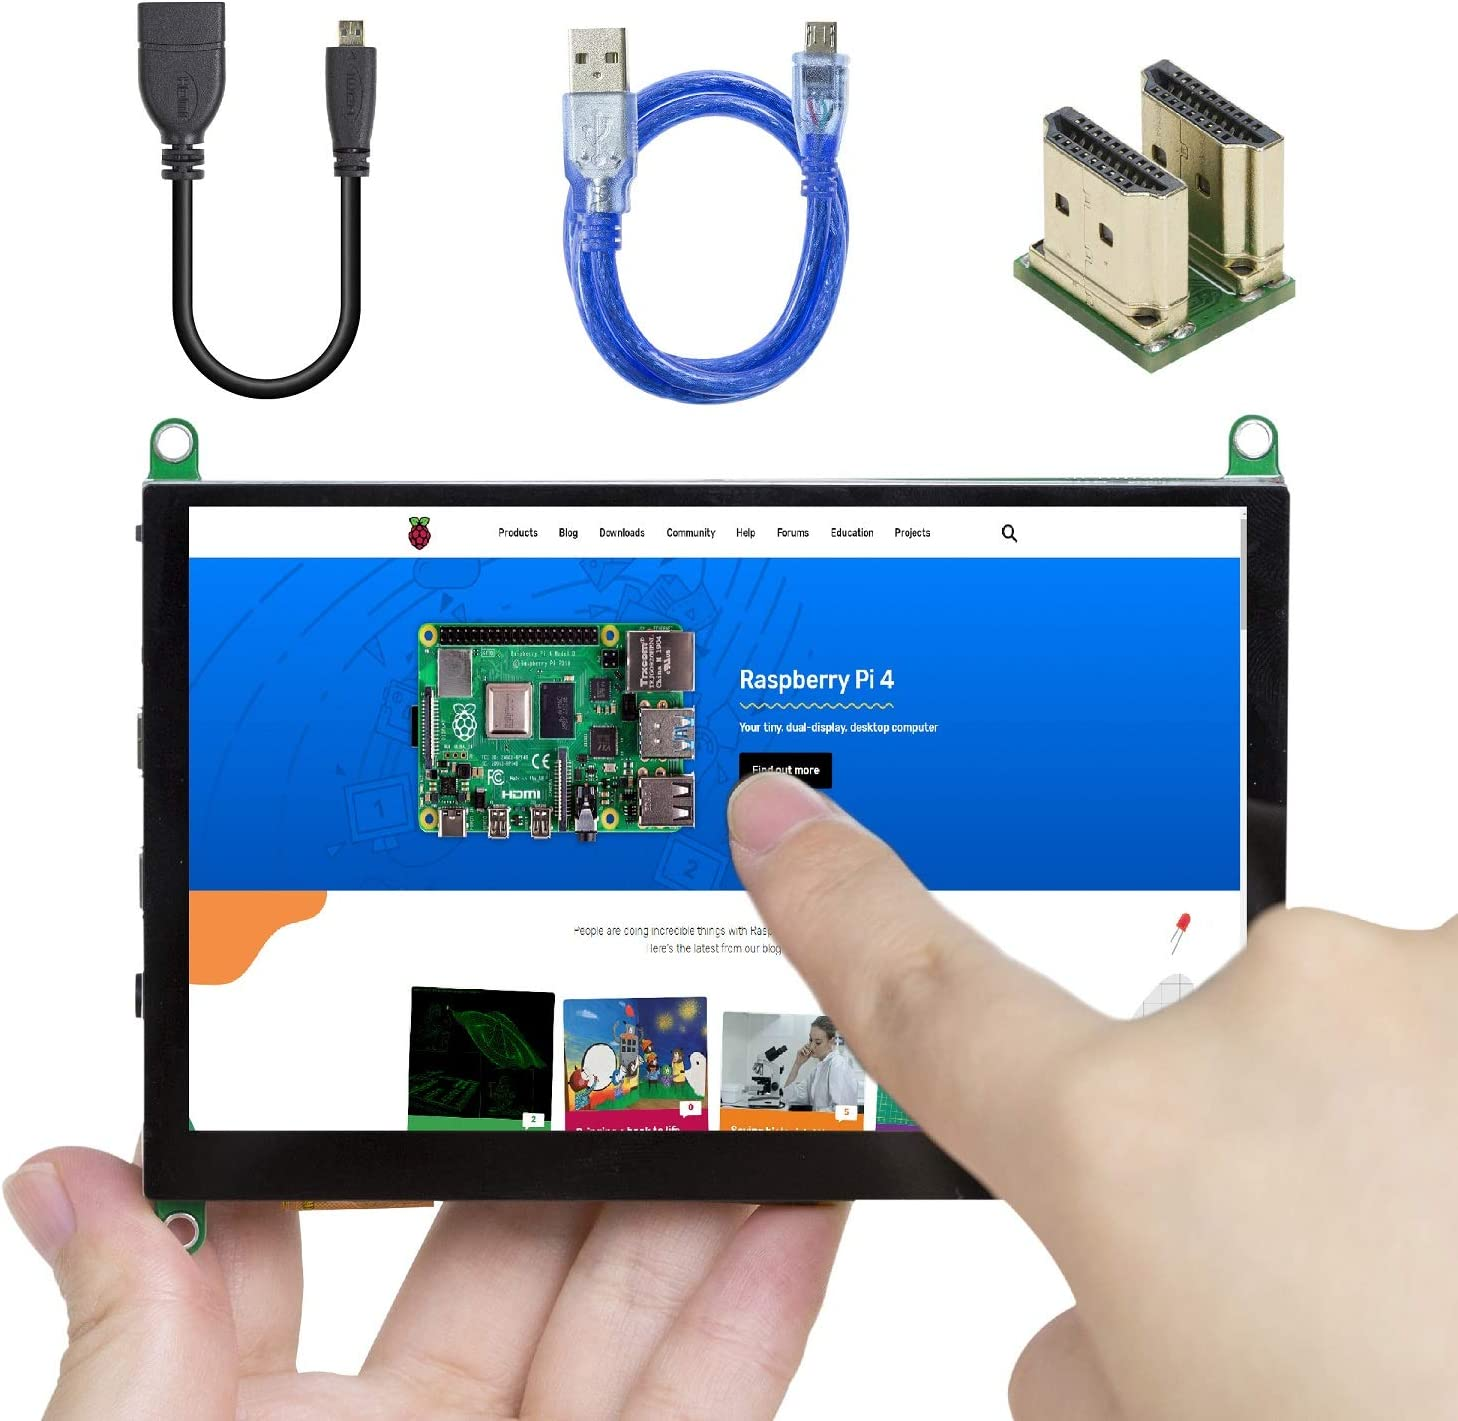 Replacement for PARTS-SC-ADPT-025 Based ON The Raspberry PI Zero The SC-ADPT-025 Serves AS A Dual Display Adapter